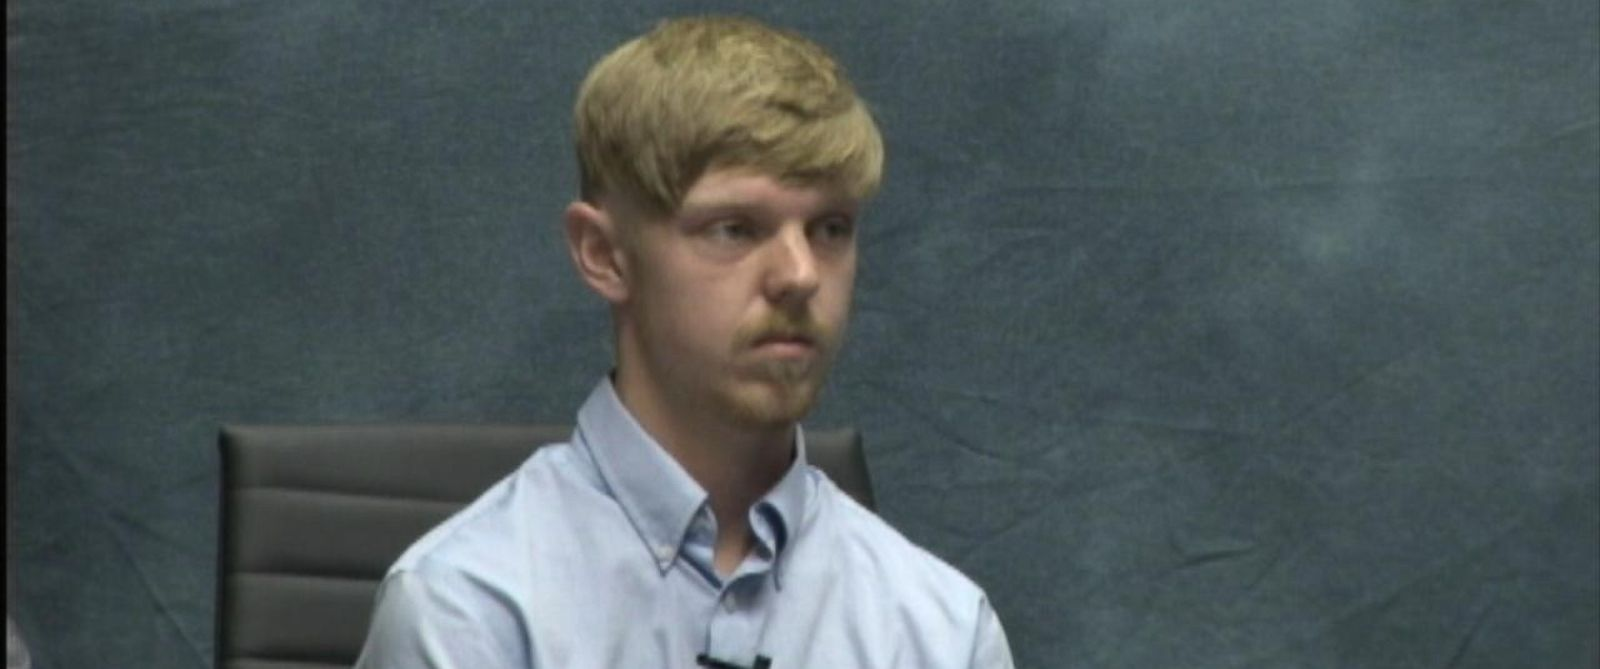 Affluenza Dui Case Never Before Seen Deposition Tapes